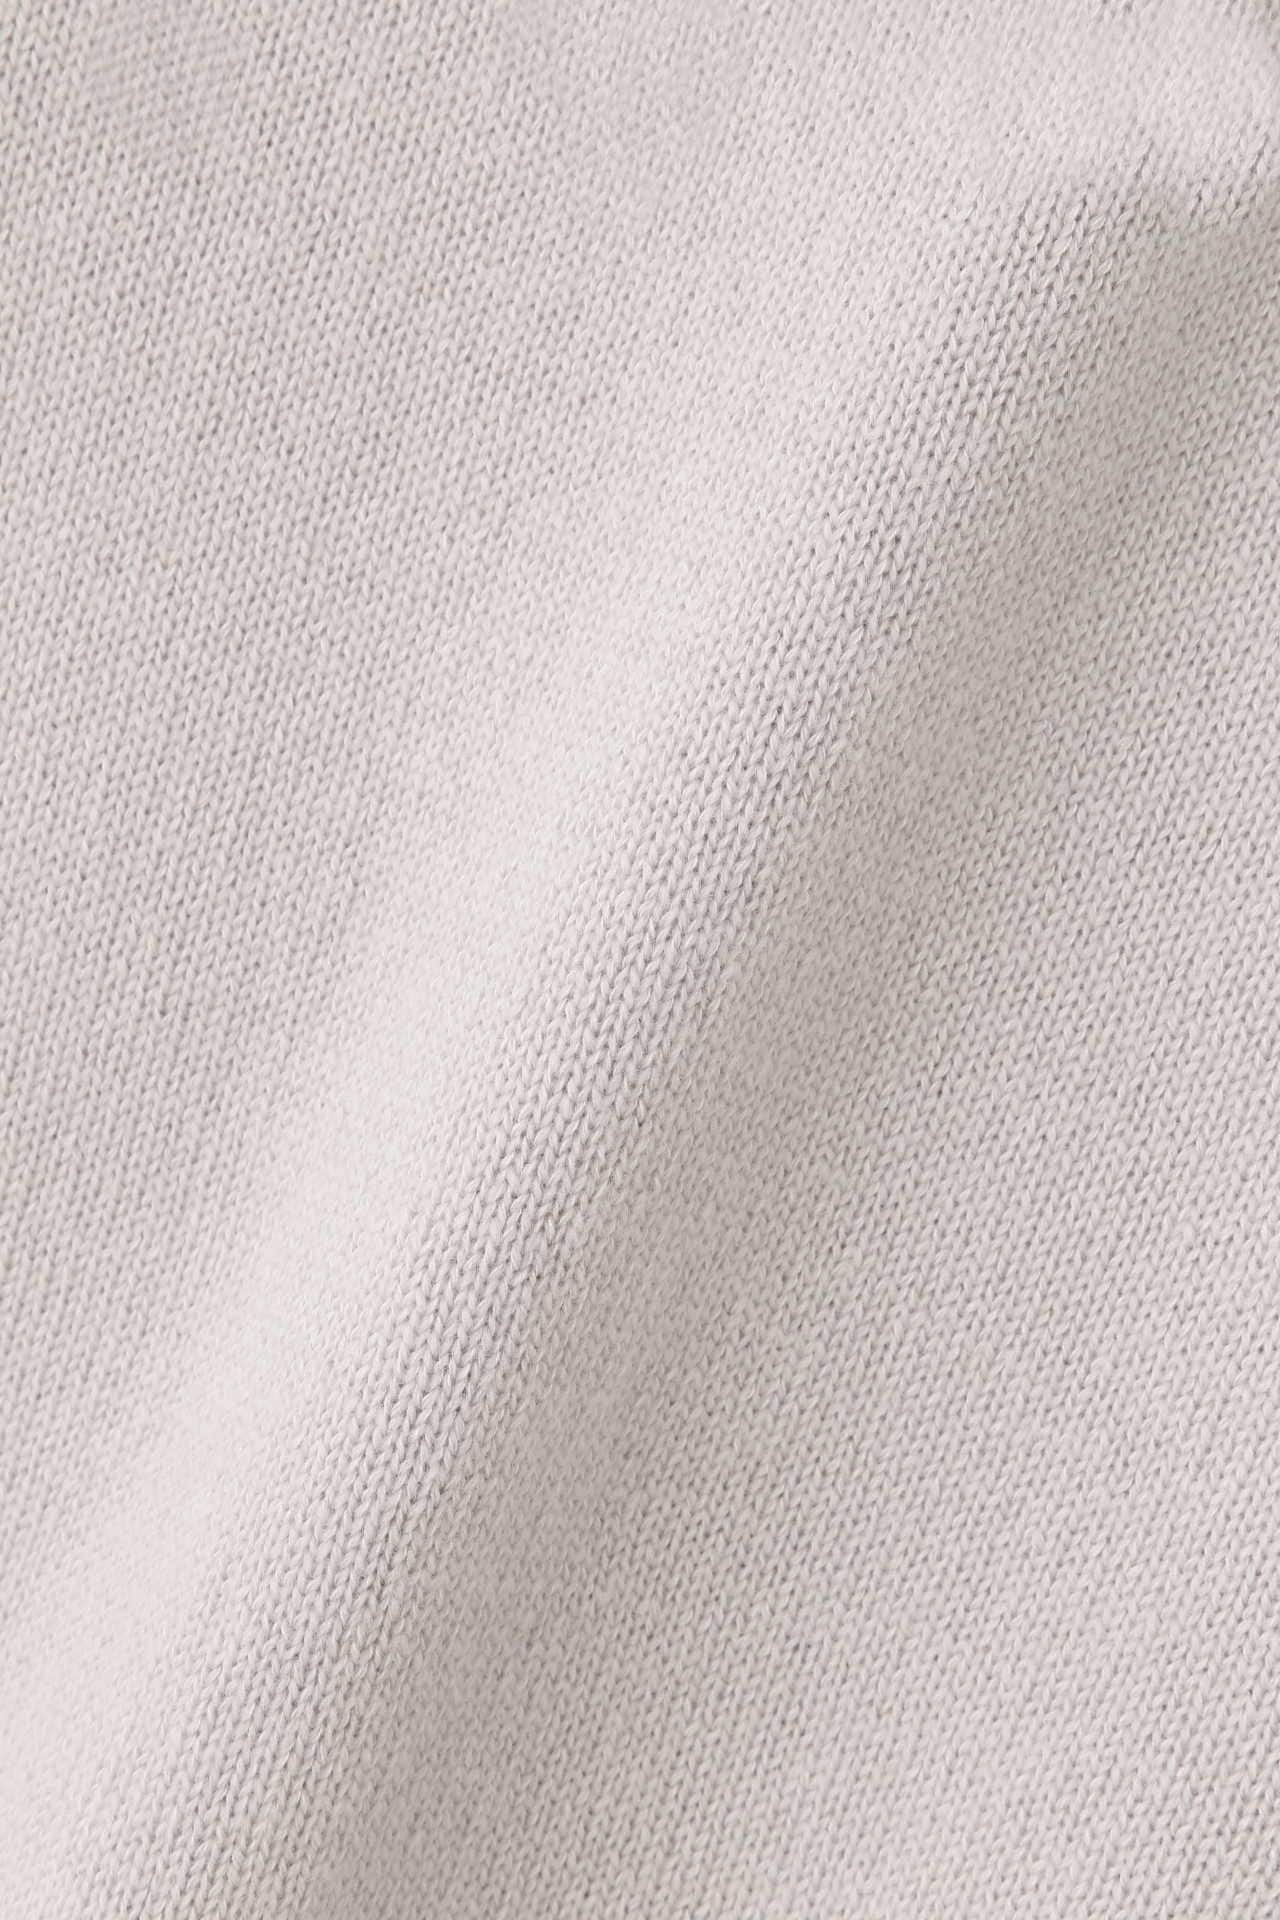 PLAIN WOOL COTTON9